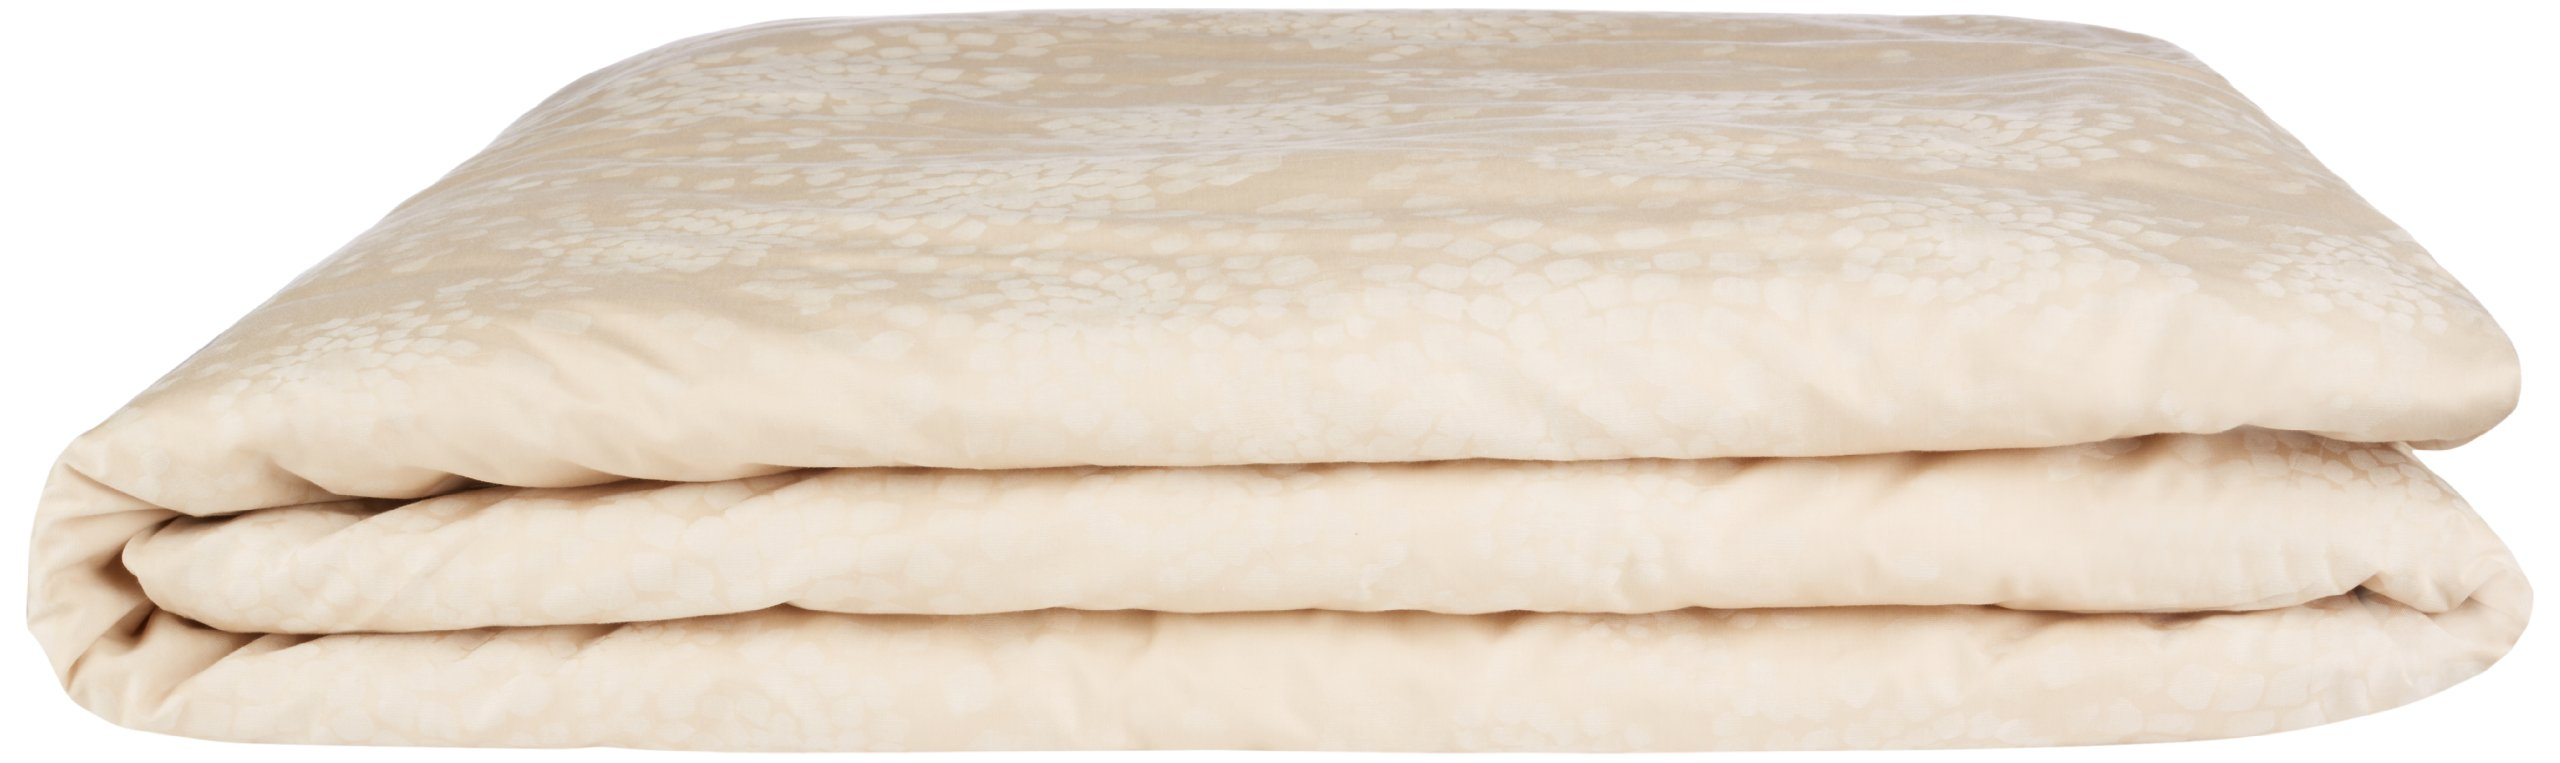 Calvin Klein Home Katsura Duvet Cover, Queen, Wheat